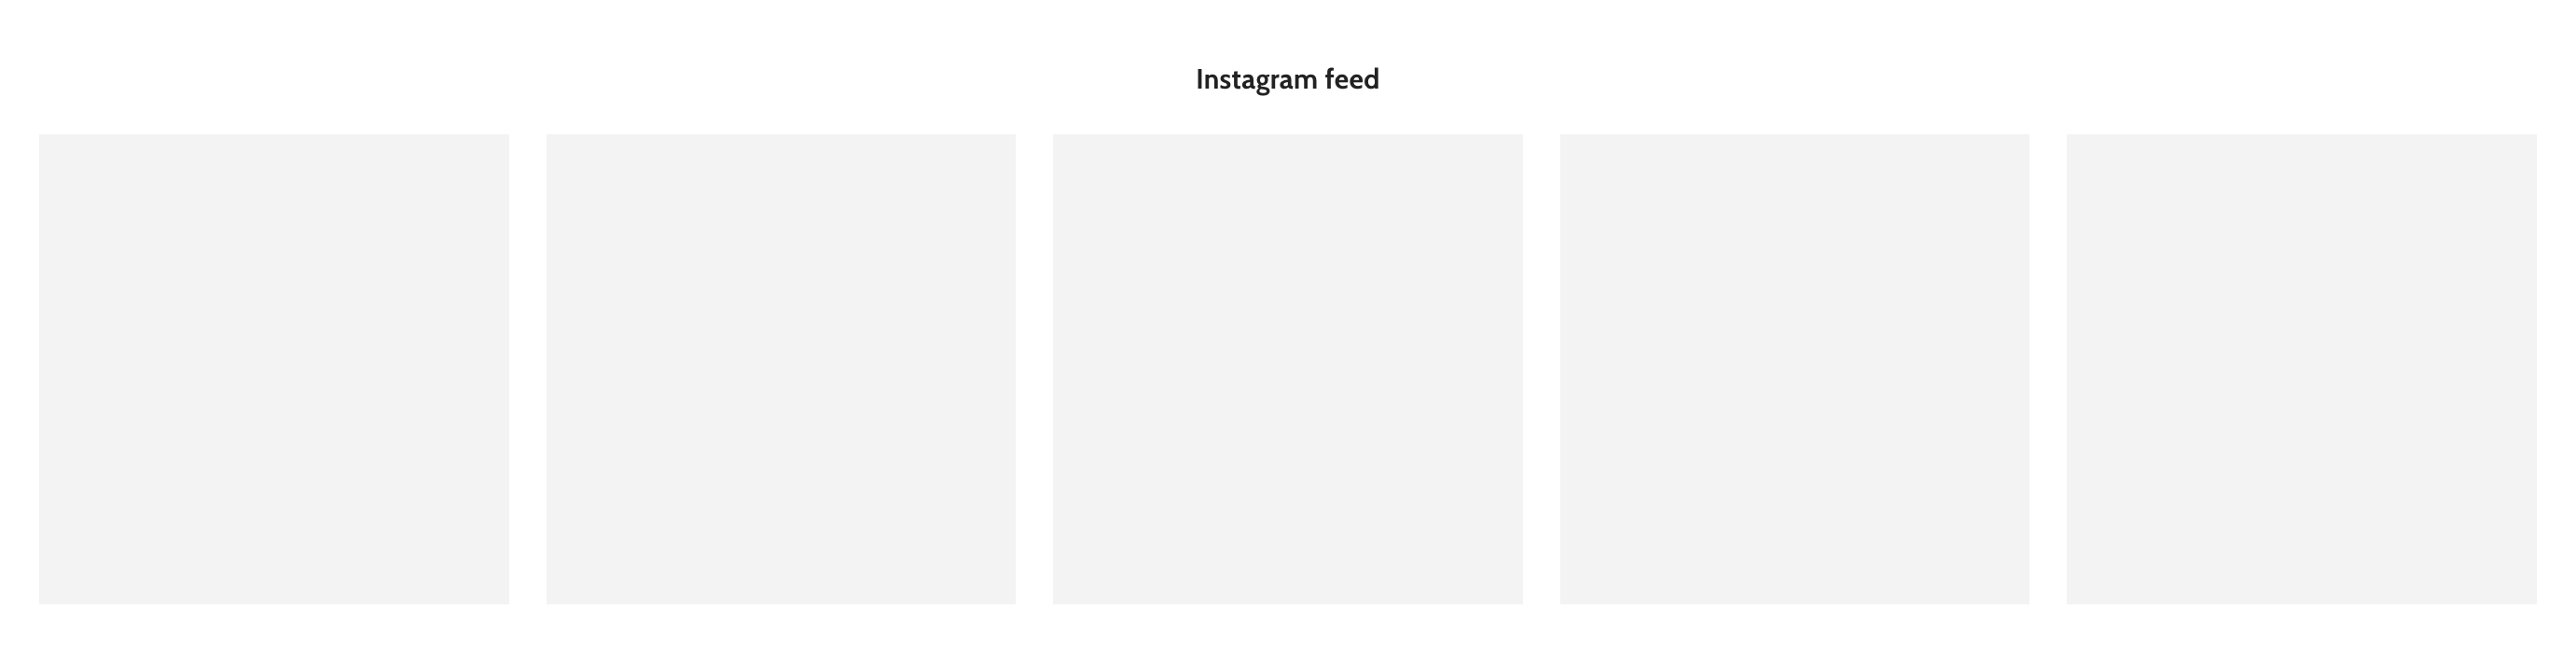 instagram_feed_with_images_failing_to_load.png